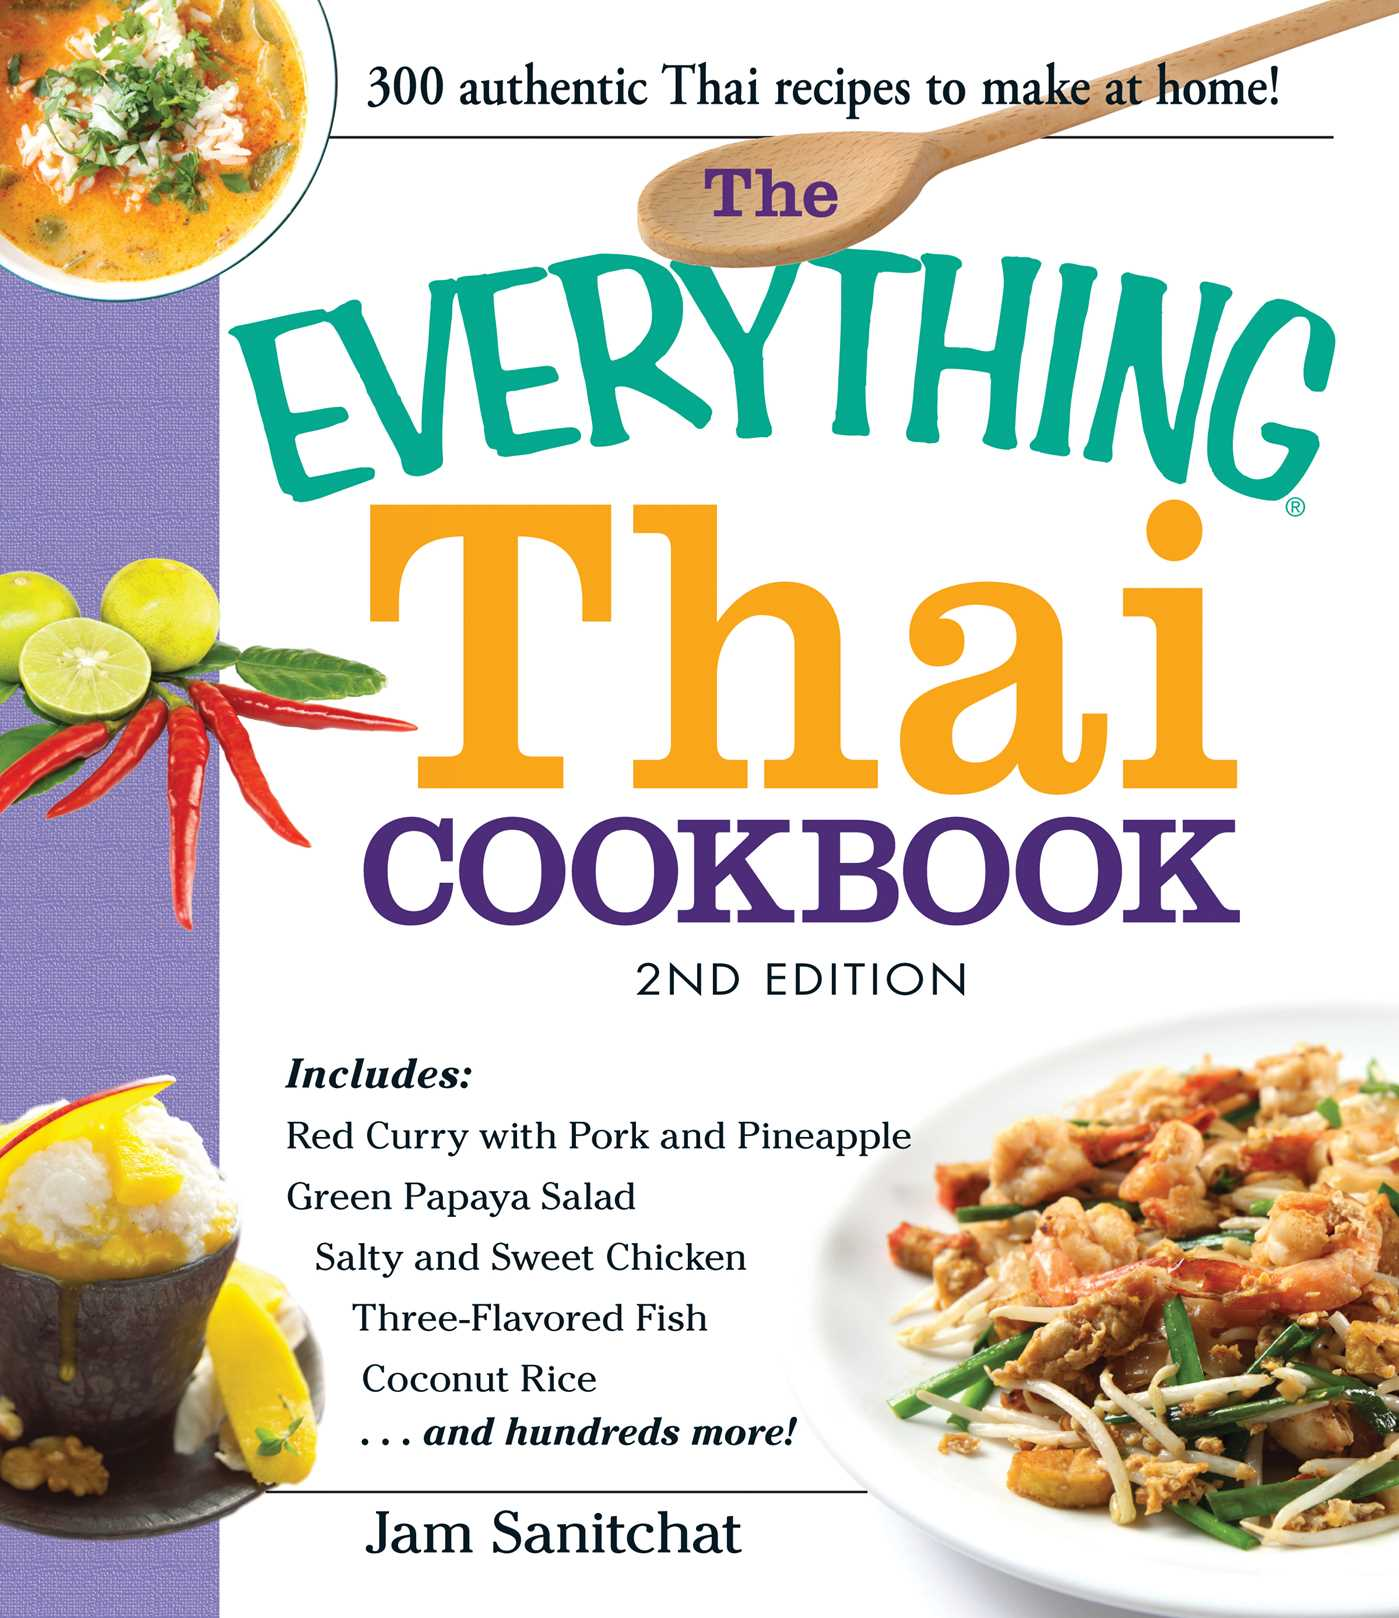 The everything thai cookbook ebook by jam sanitchat official book cover image jpg the everything thai cookbook forumfinder Choice Image